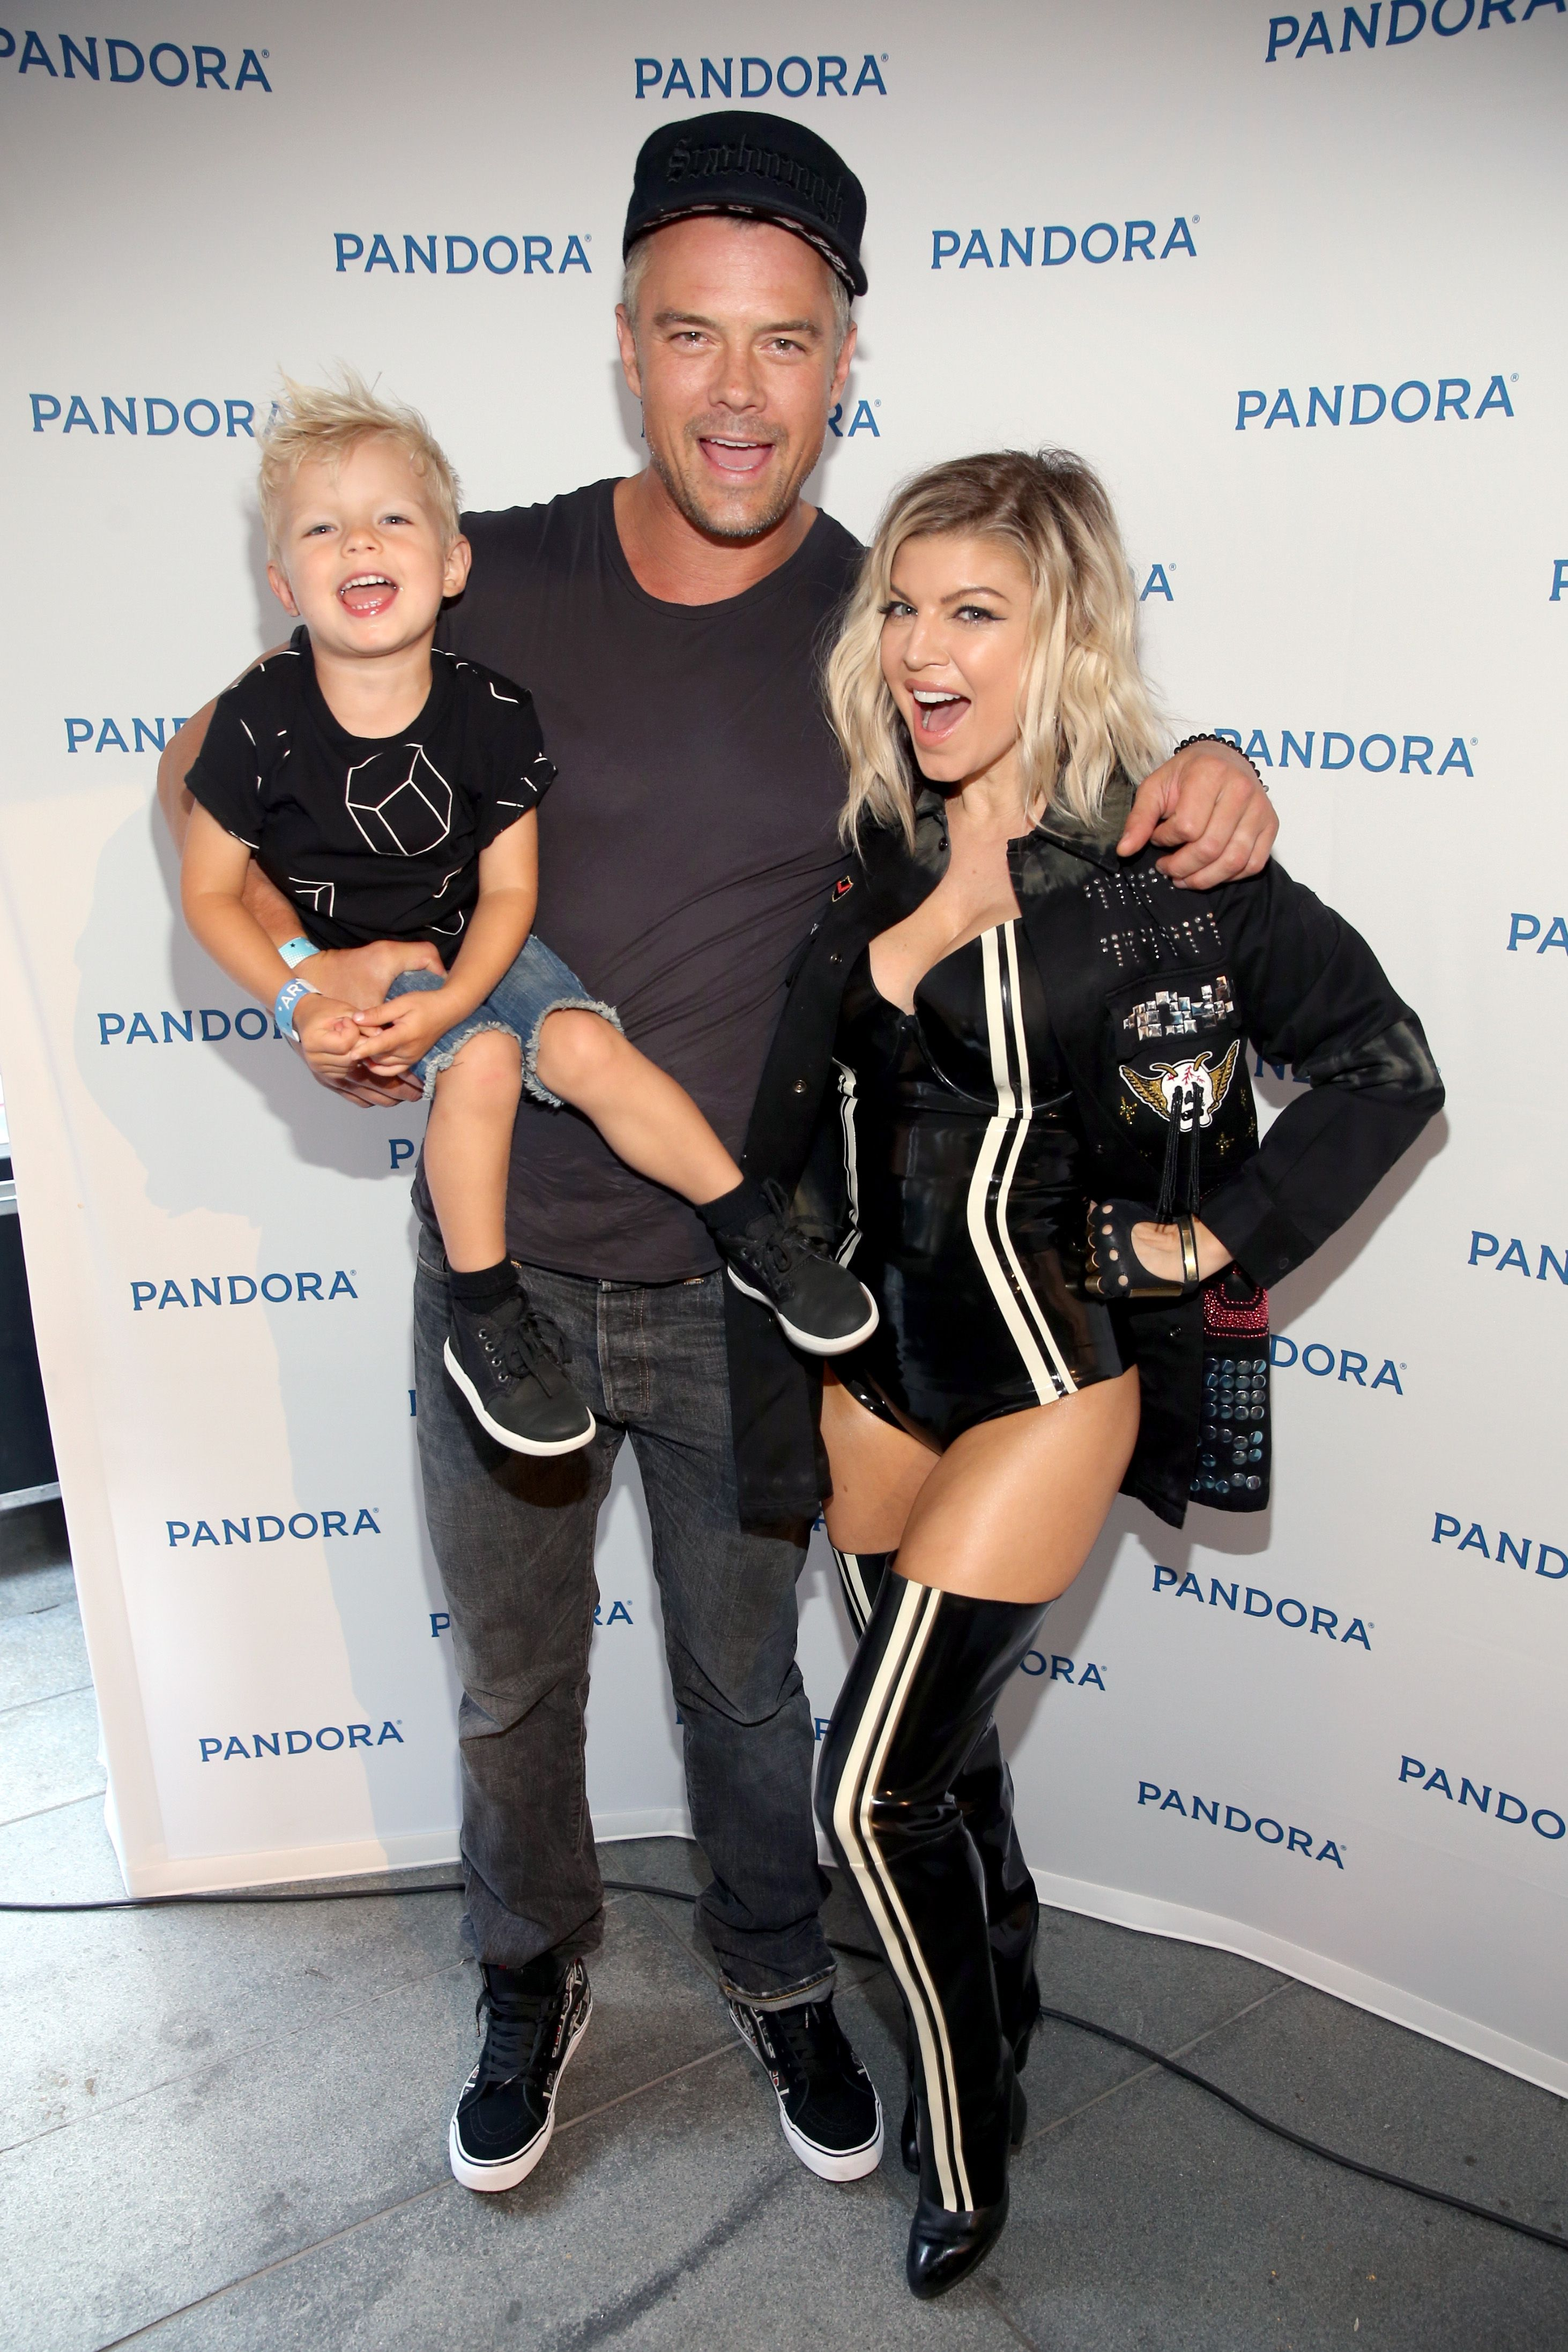 Josh Duhamel, and Fergie with son Axl at Pandora Summer Crush in 2016 in Los Angeles, California | Source: Getty Images